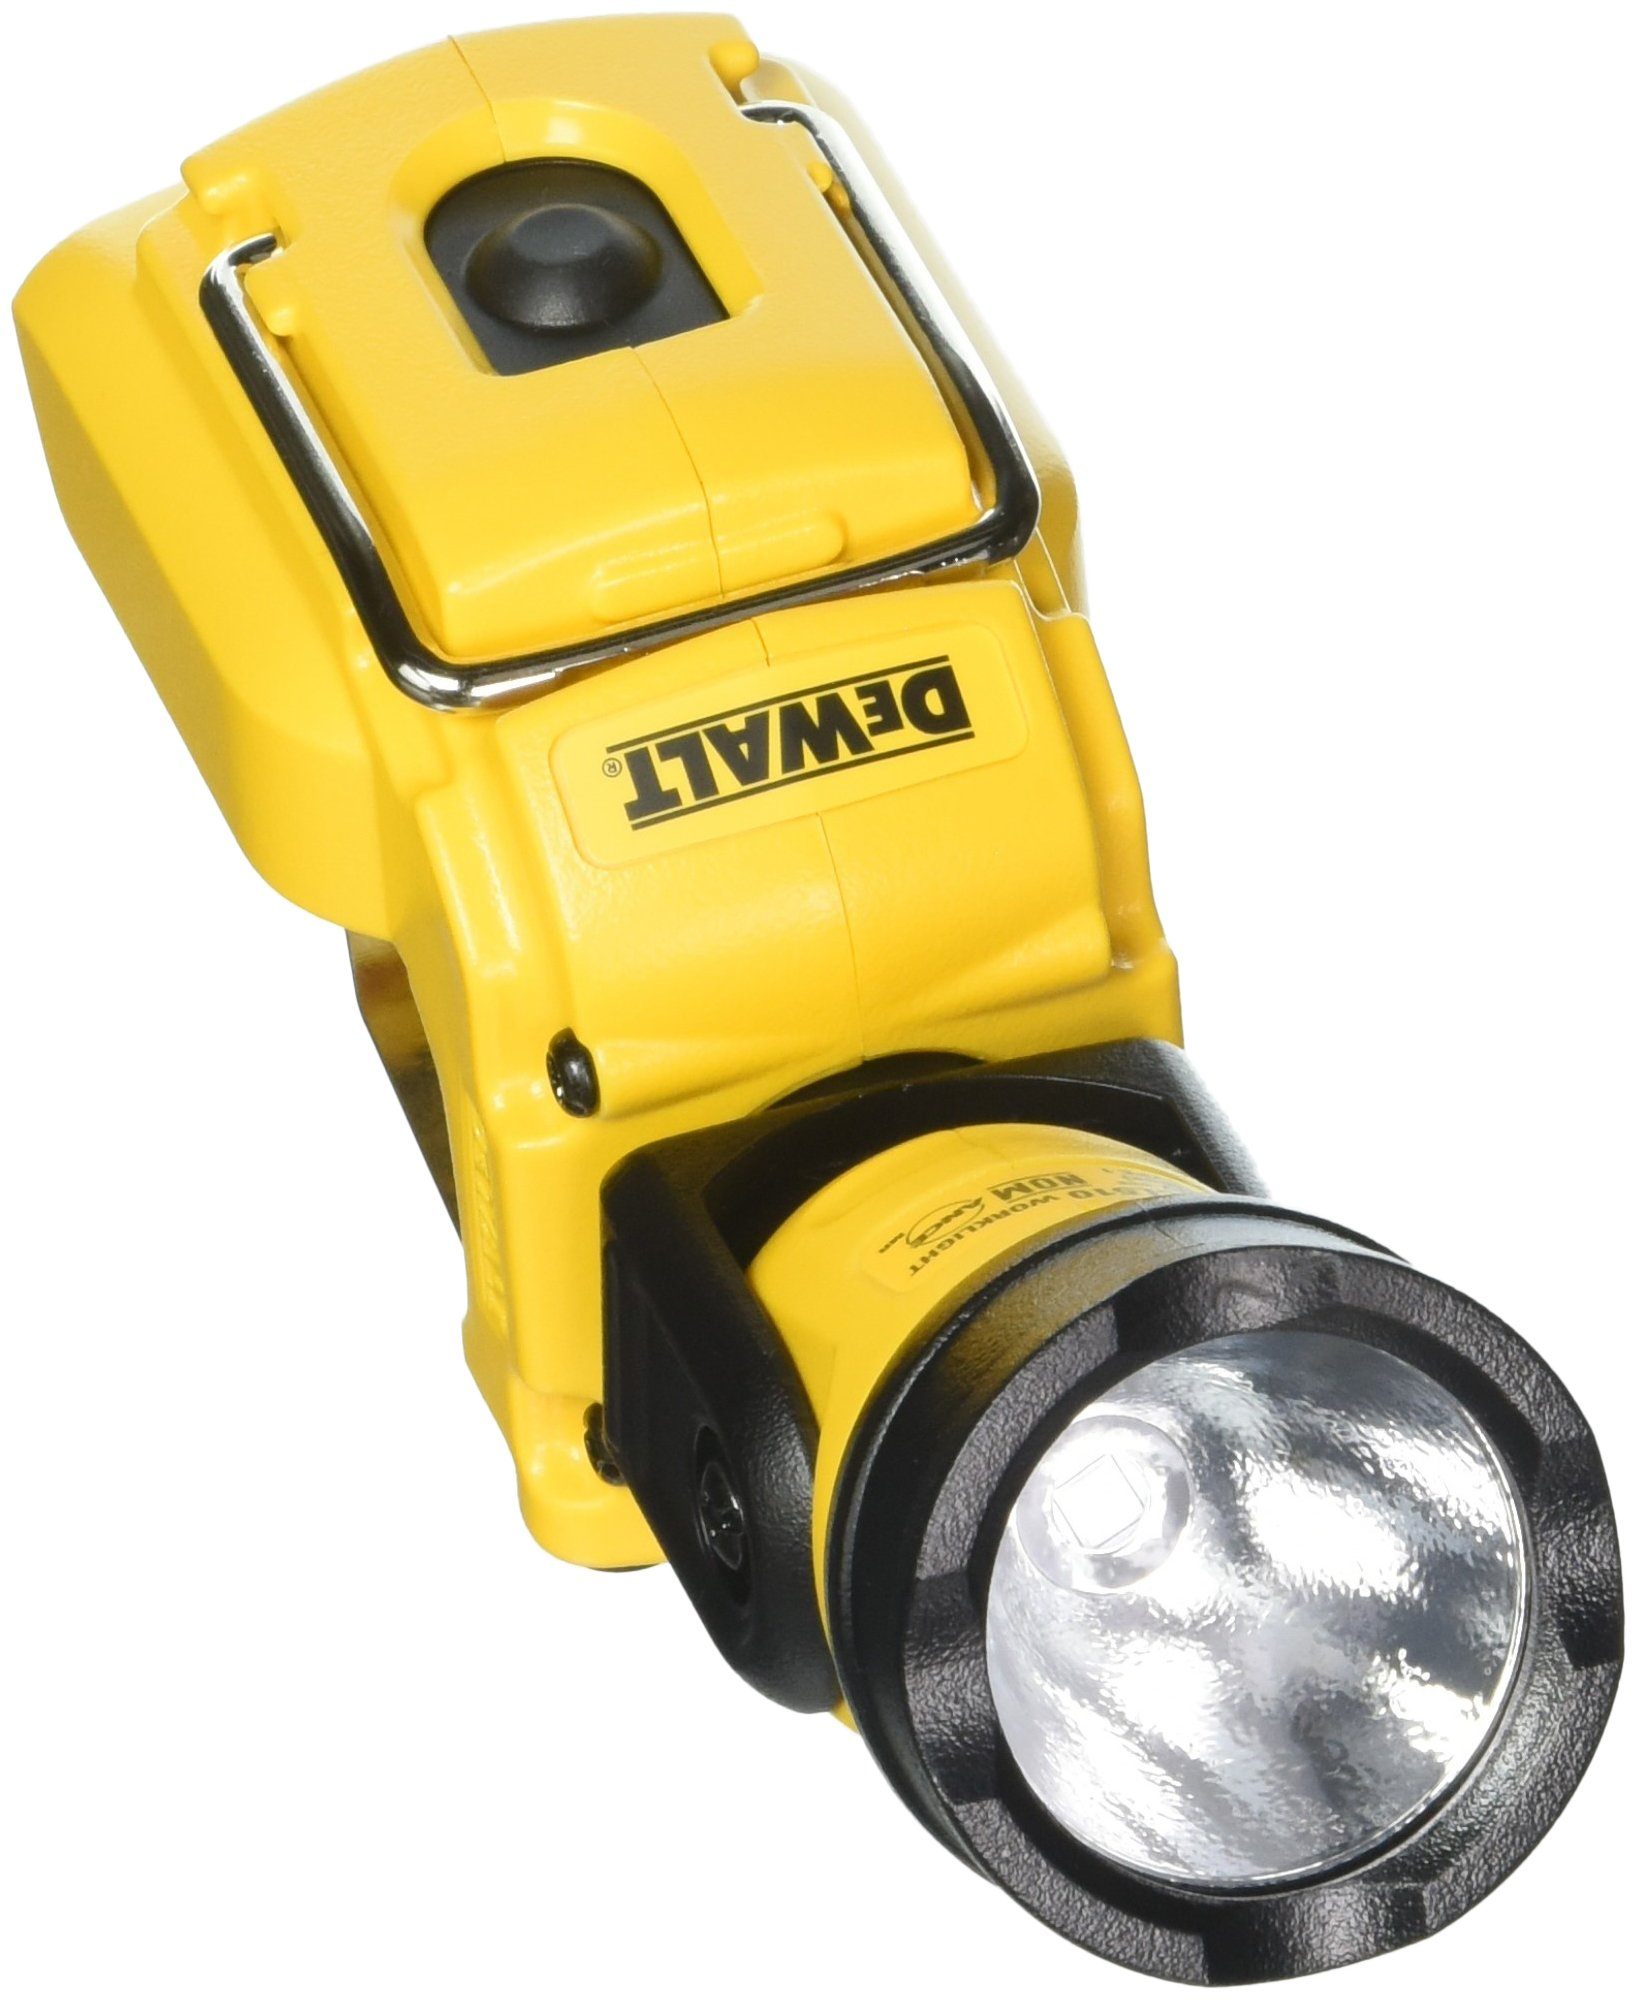 DEWALT DCL510 12-Volt Max LED Worklight by DEWALT (Image #1)